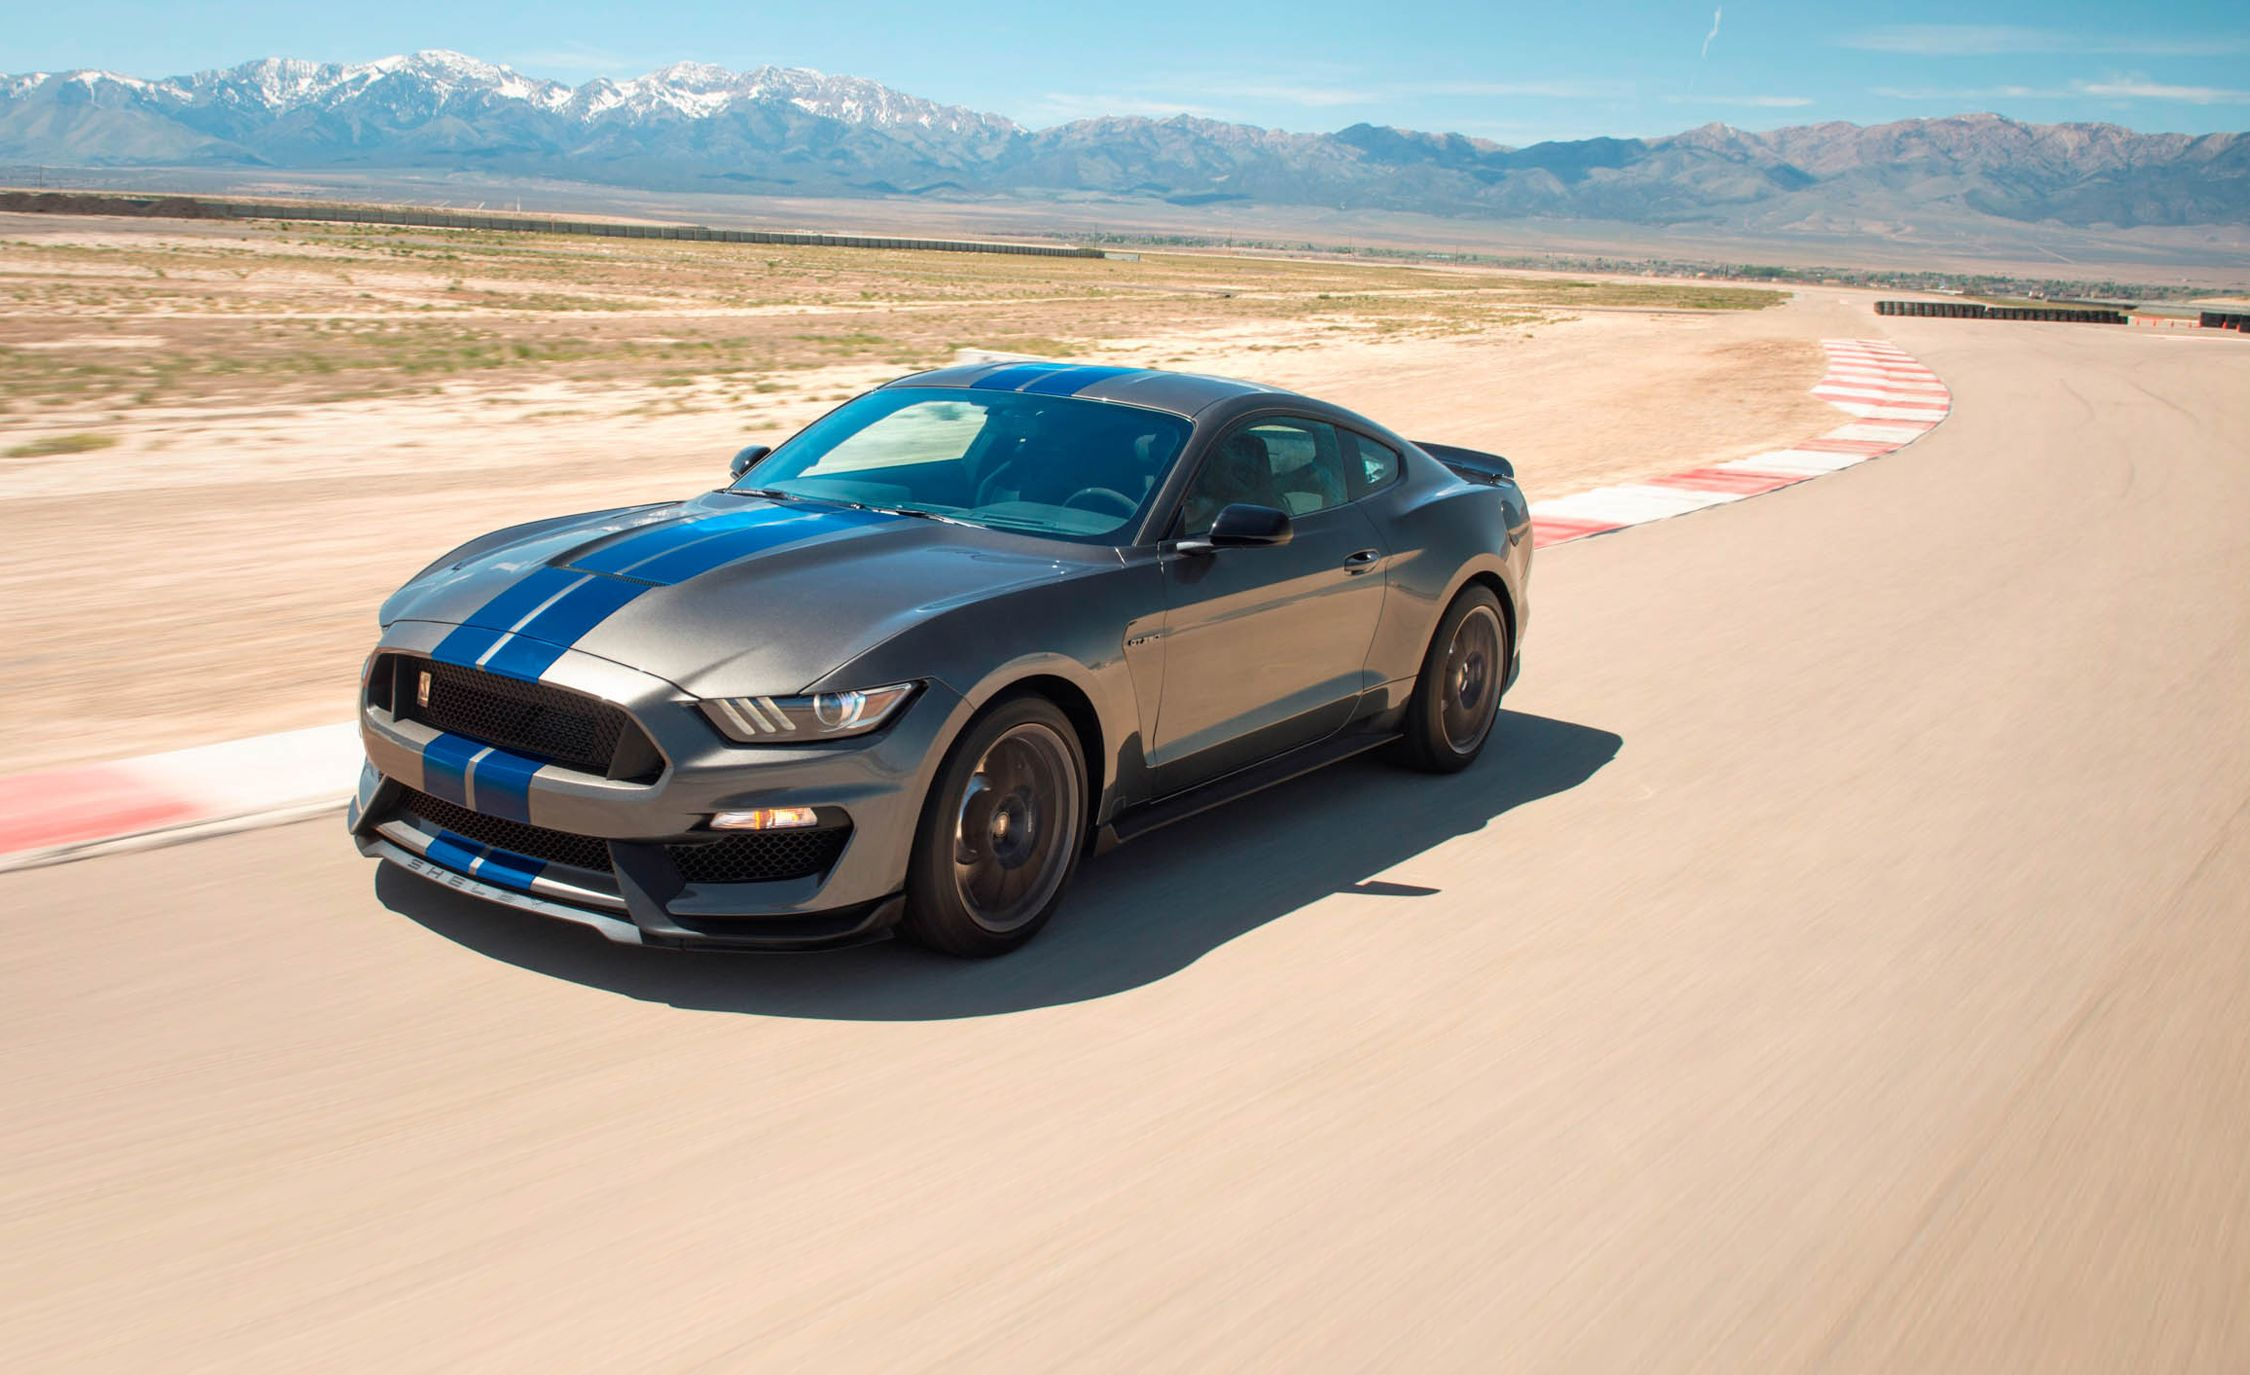 Ford Mustang Shelby Gt Gtr